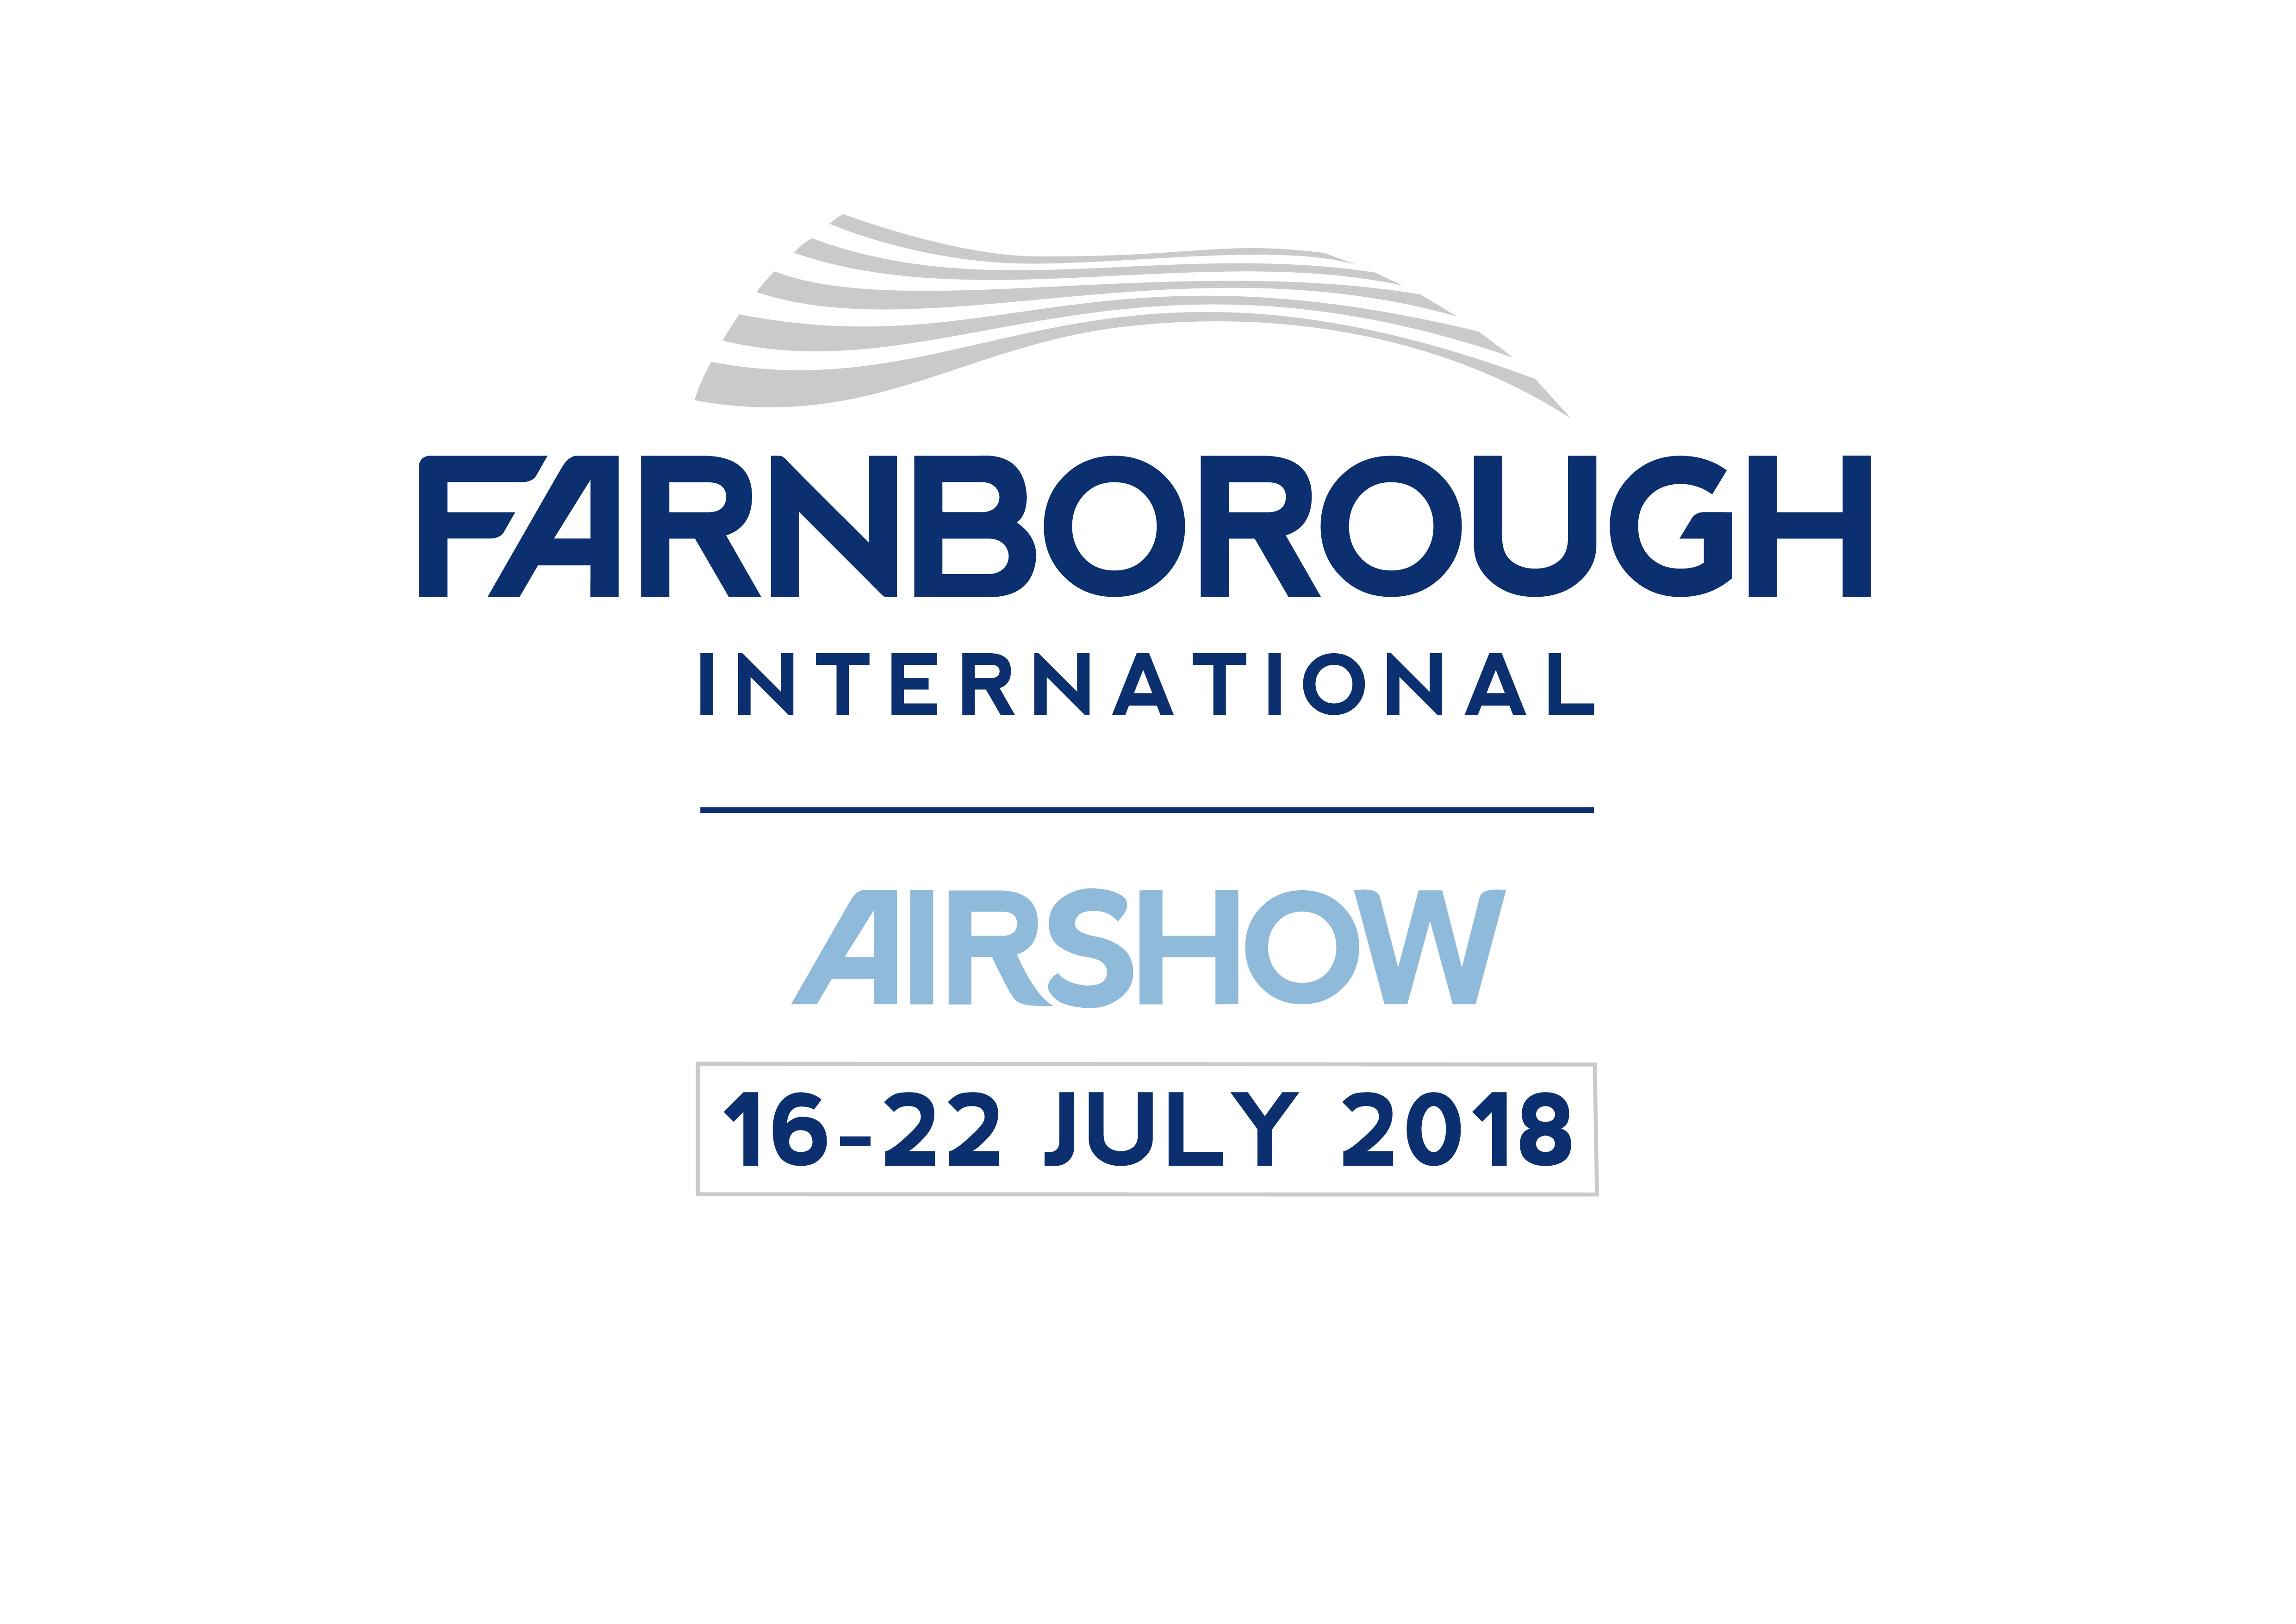 Farnborough international_airshow trade logo_with dates_stacked_White BG-01